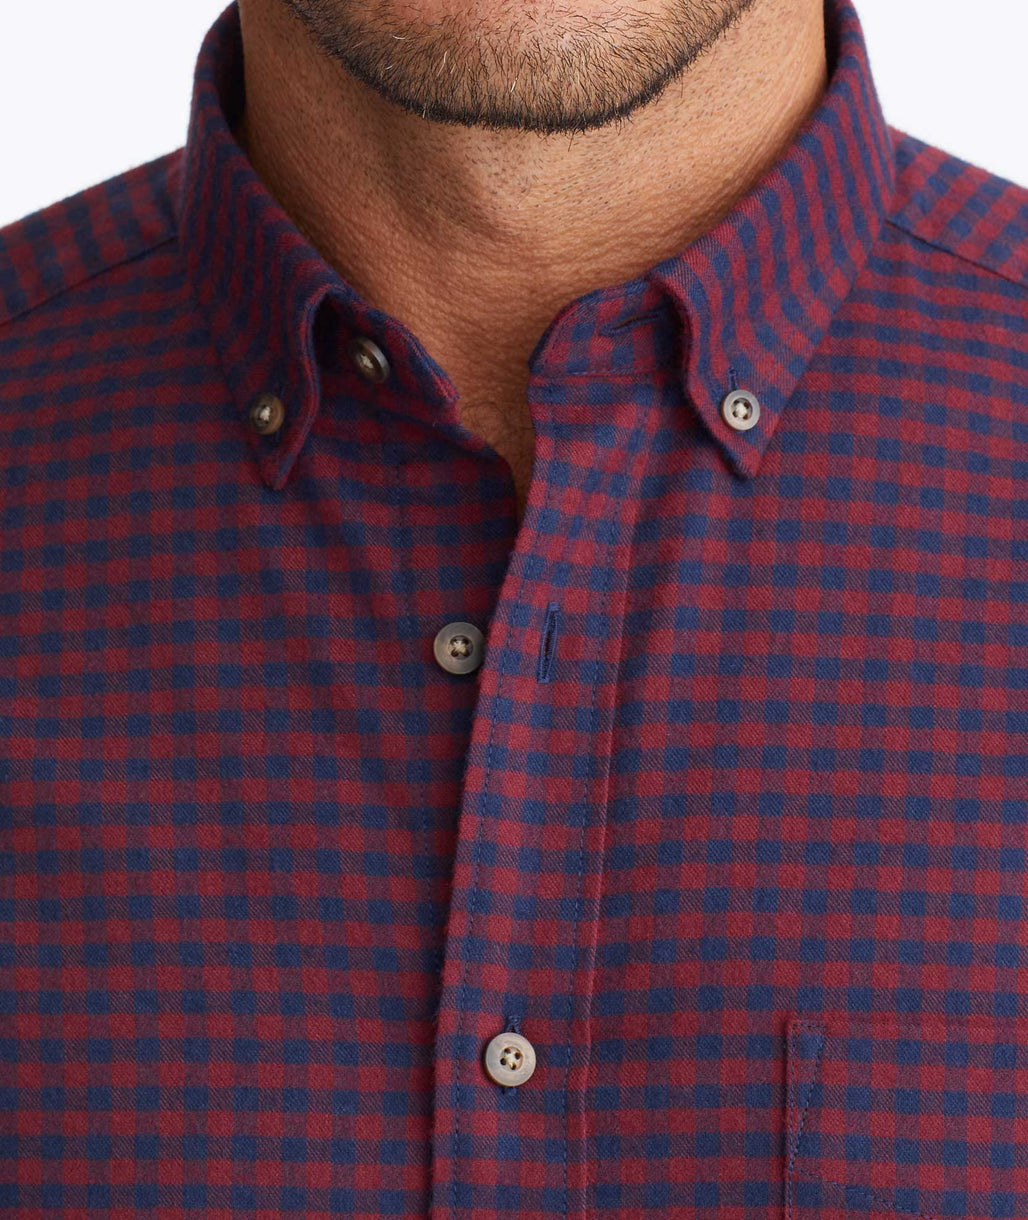 Model wearing a Navy Wrinkle-Free Performance Flannel Leland Shirt